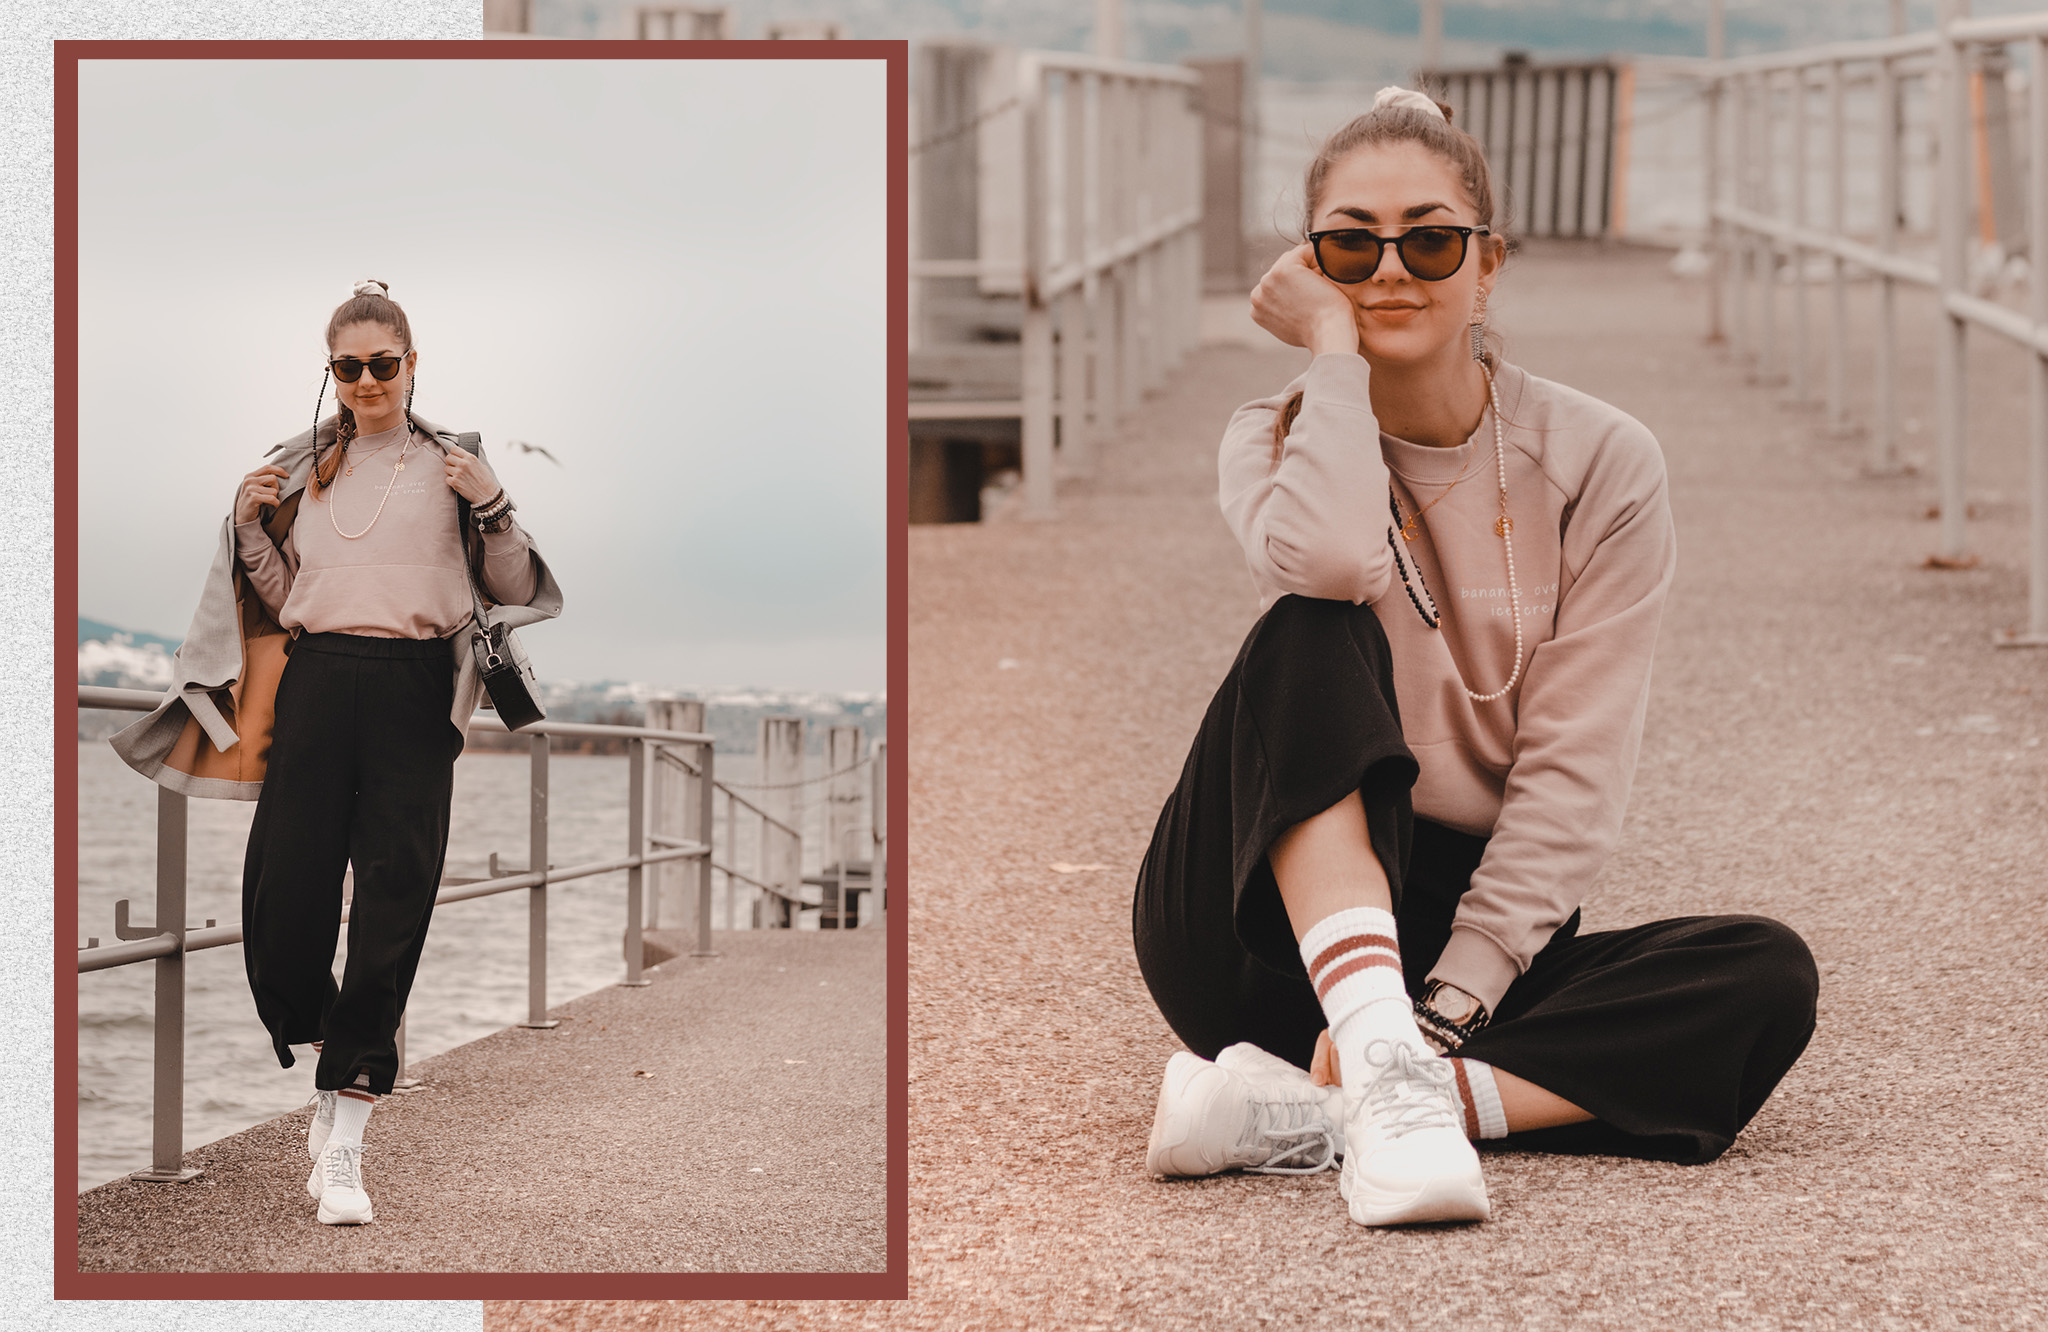 Why these sneakers are the perfect investment right now. #trending #fashion #sneakers #outfit #style #womensfashion #shoes